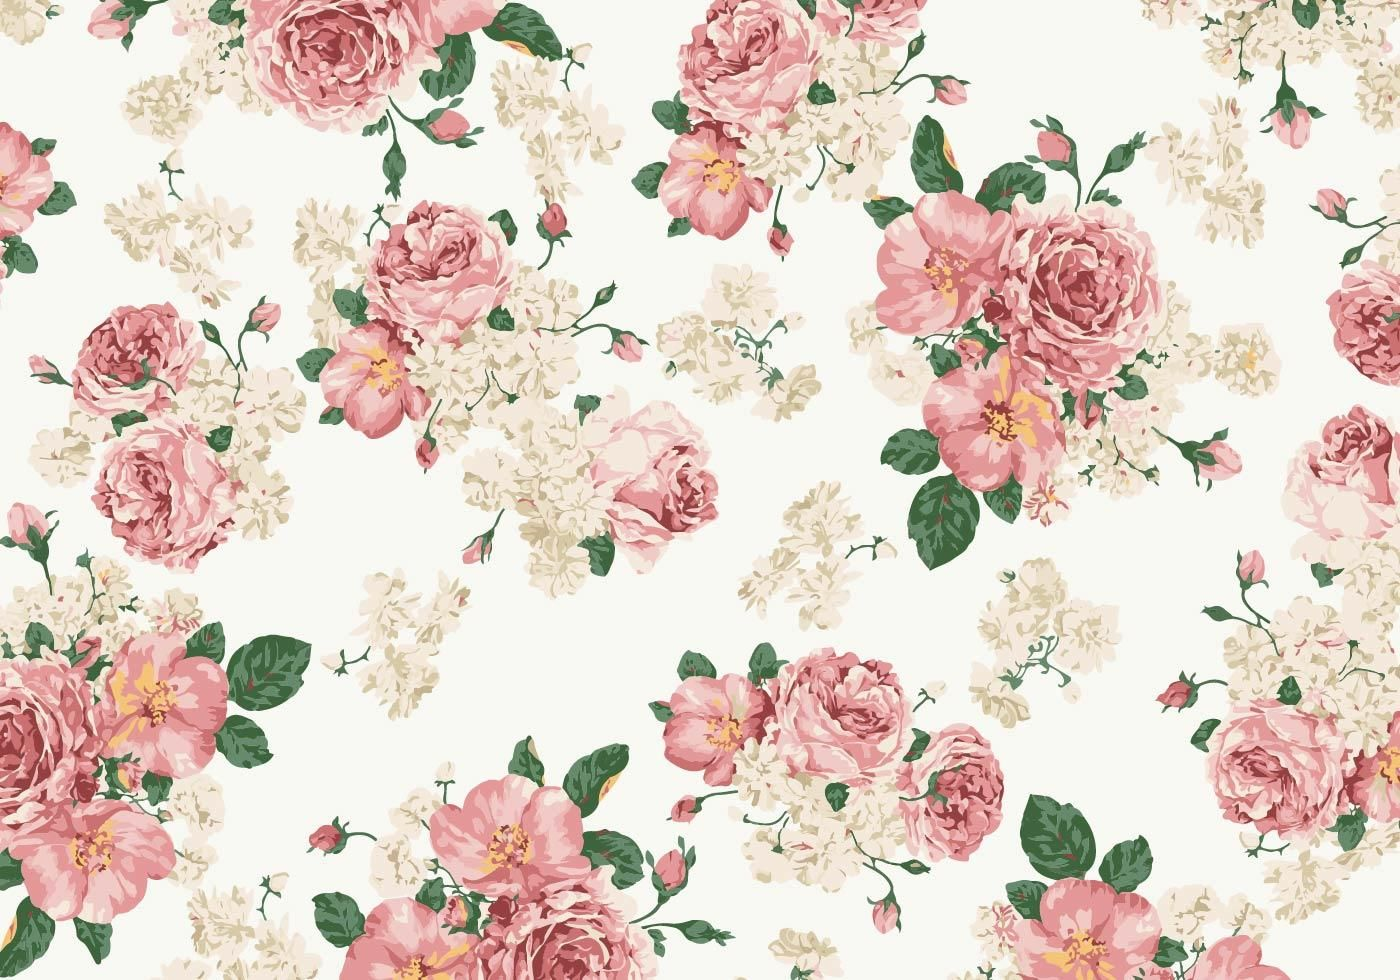 Vintage Pink And White Roses Vector Background Vintage Flowers Wallpaper Vintage Floral Backgrounds Floral Pattern Wallpaper